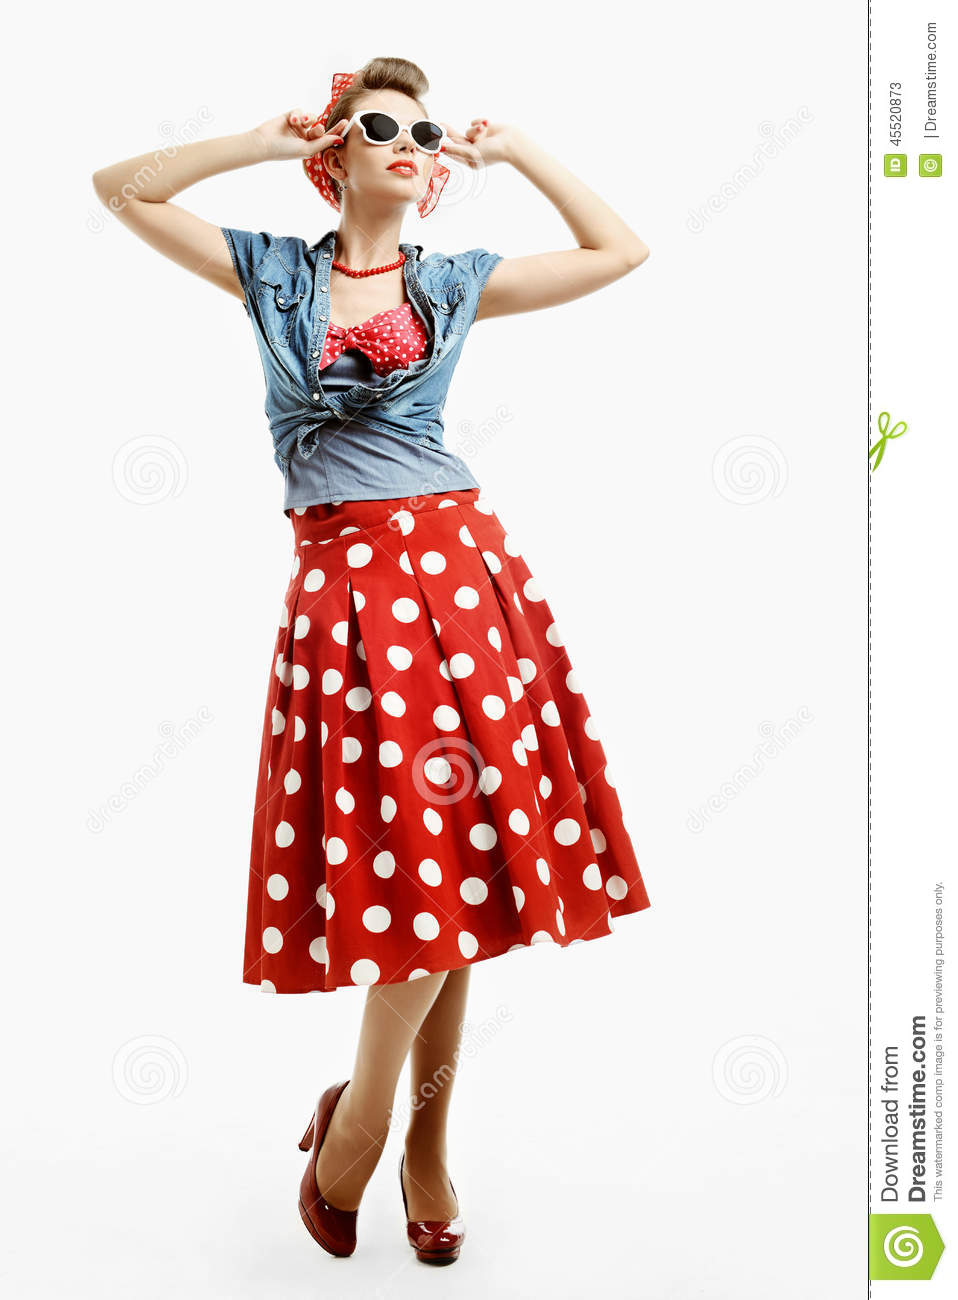 Pin-up Young Woman In Vintage American Style Trying On A ...